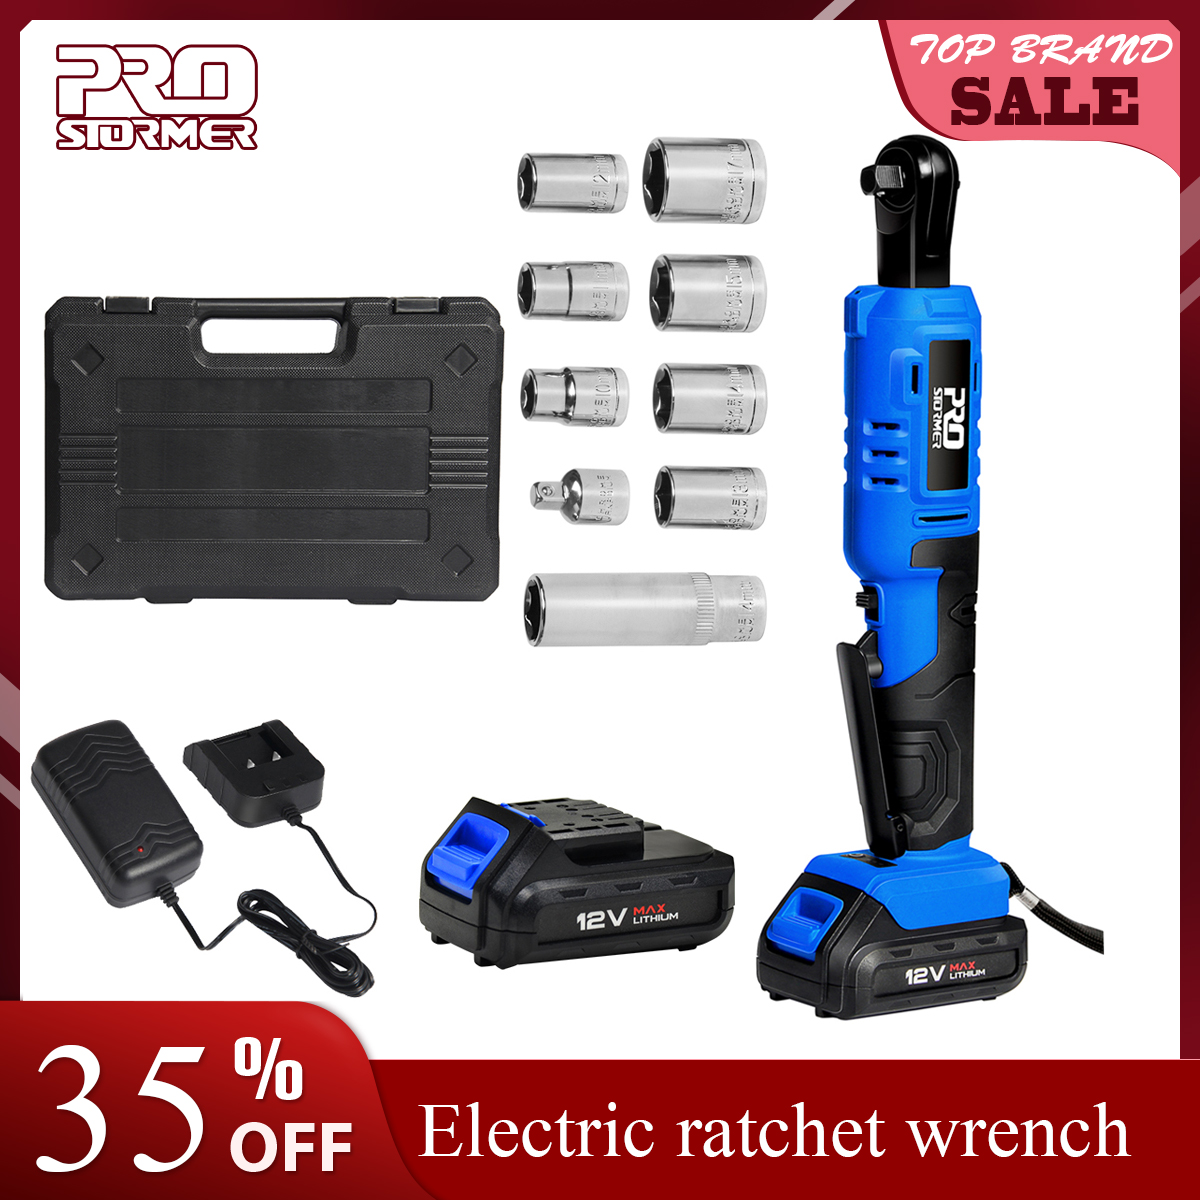 PROSTORMER 12V Electric Ratchet Wrench 45NM Torque 3 8 inch Cordless Wrench 2000mAh Rechargeable Battery Standable